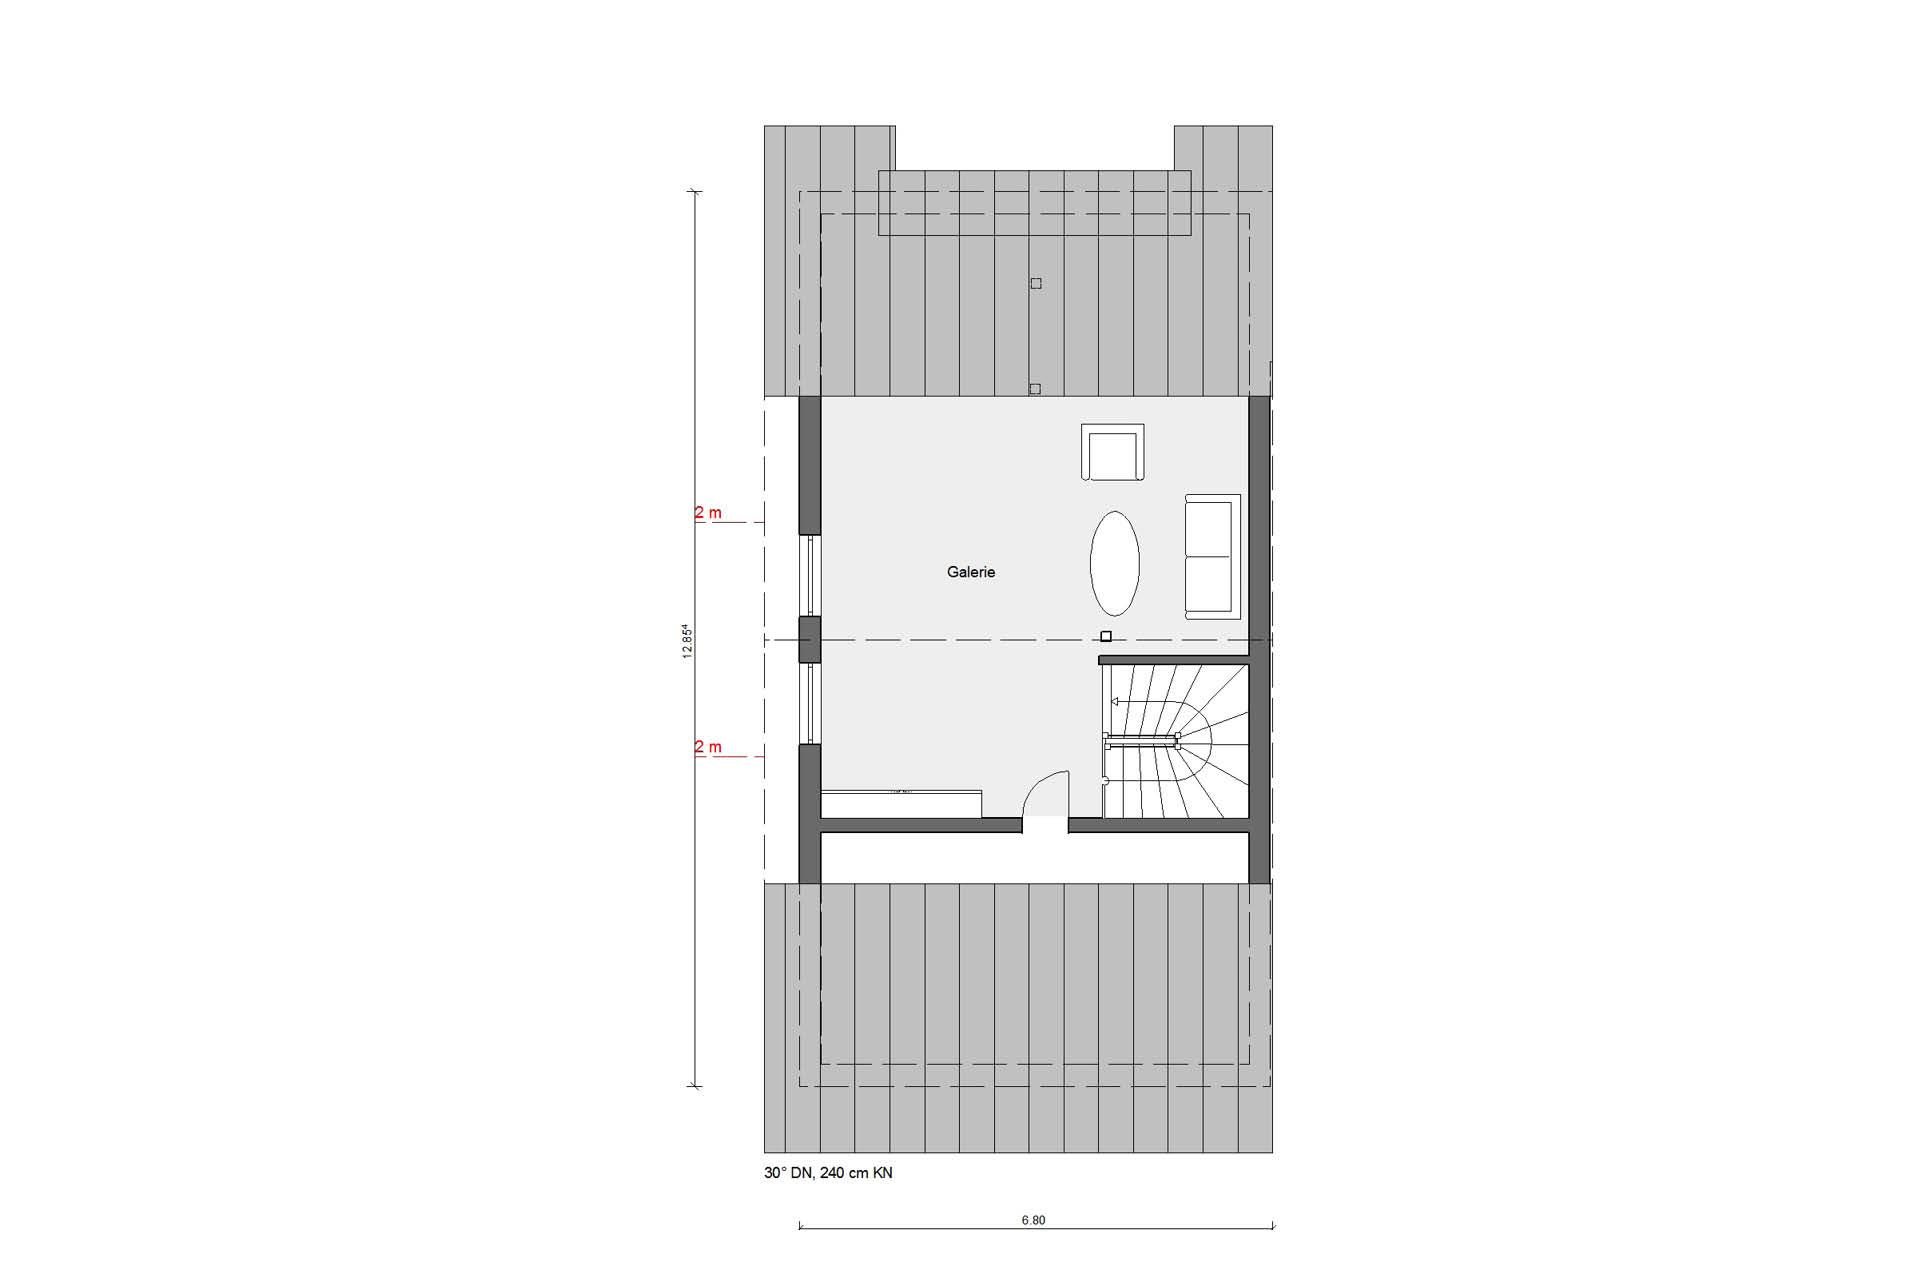 Floor plan attic D 15-216.1 terraced house